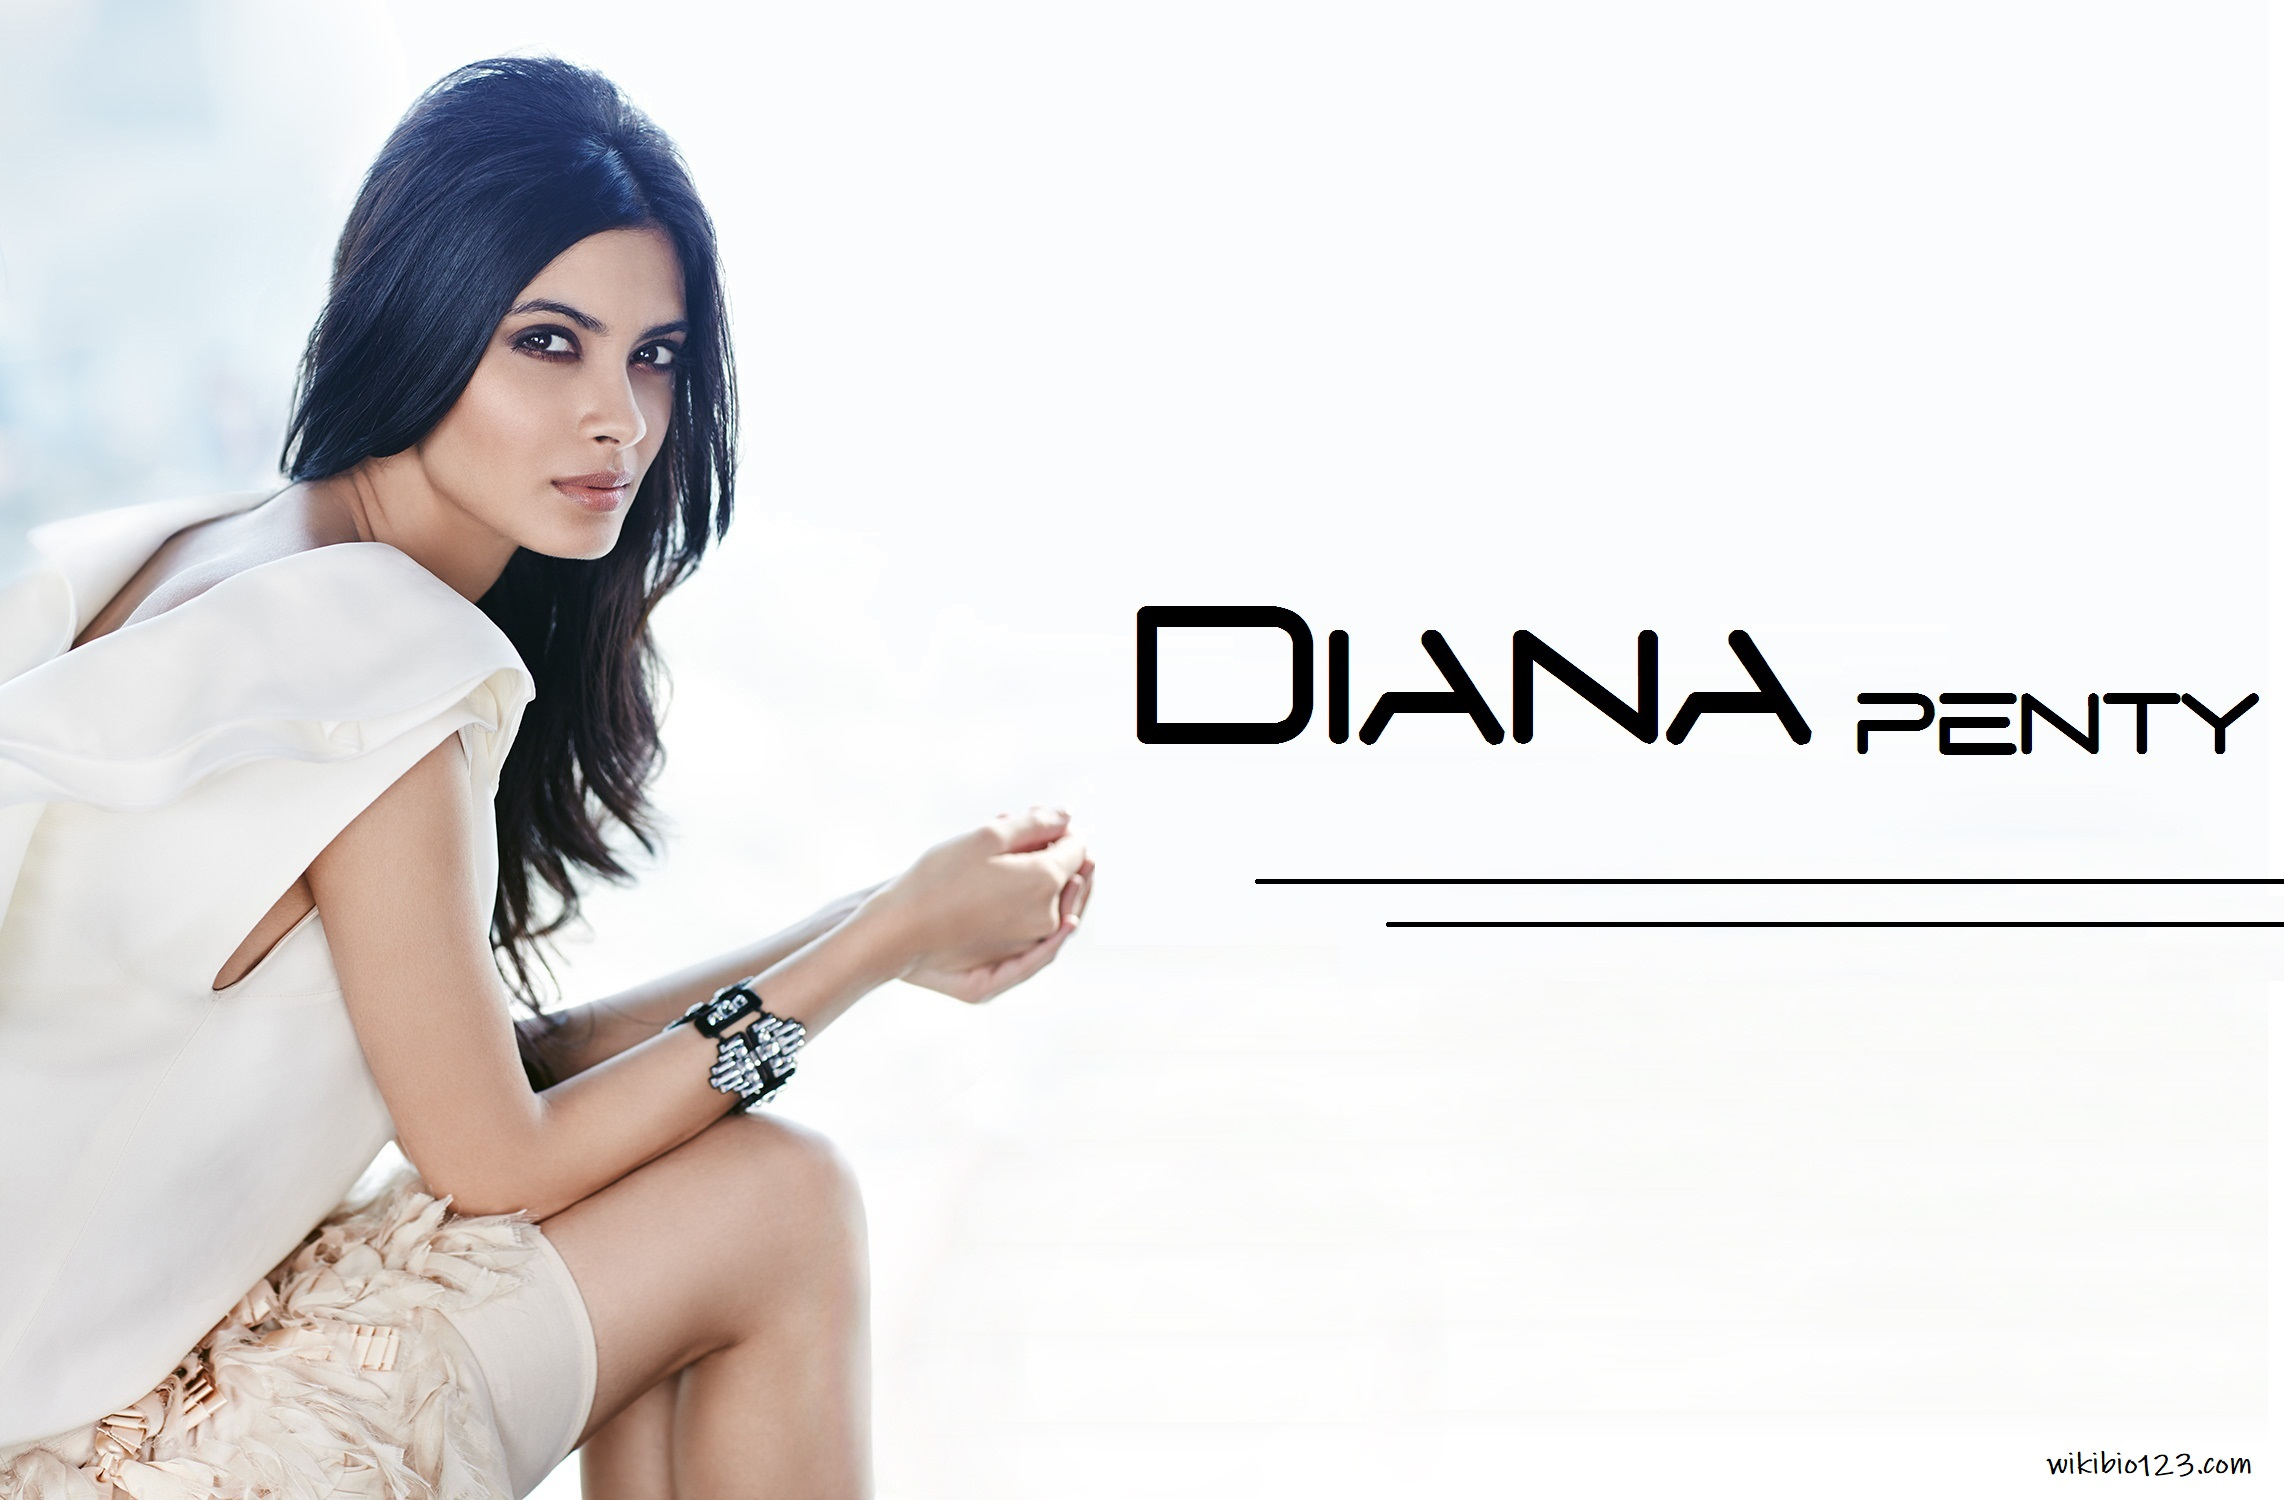 Diana Penty wiki Bio Age Figure size Height HD Images Wallpapers Download